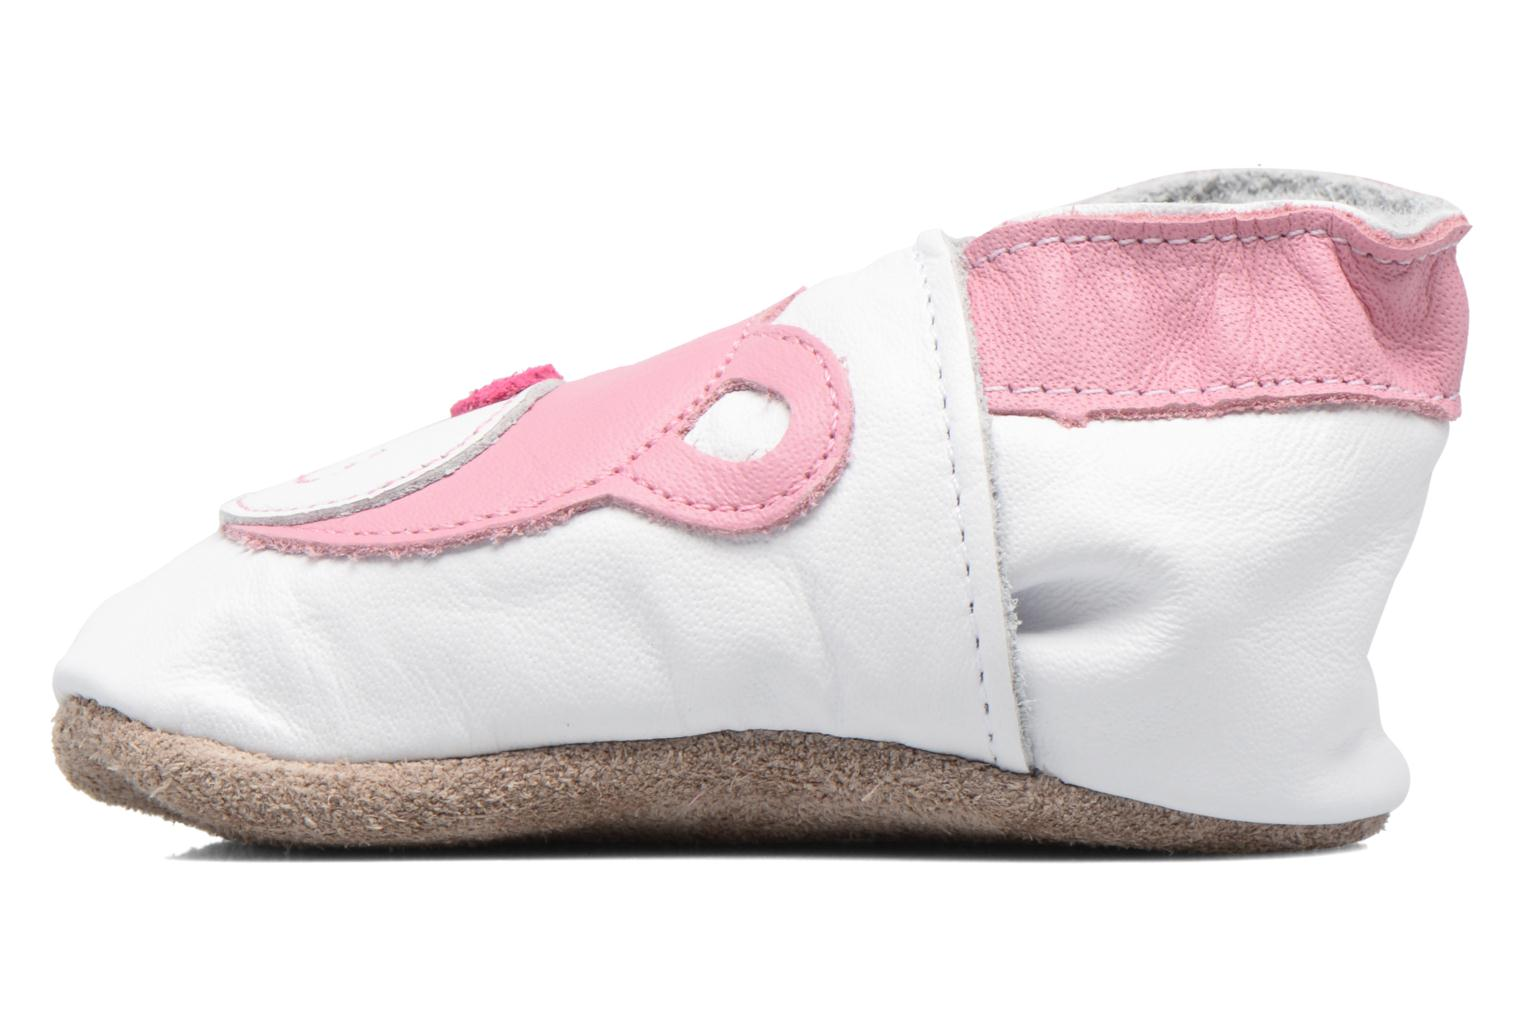 Chaussons Inch Blue Teddy Pink Blanc vue face